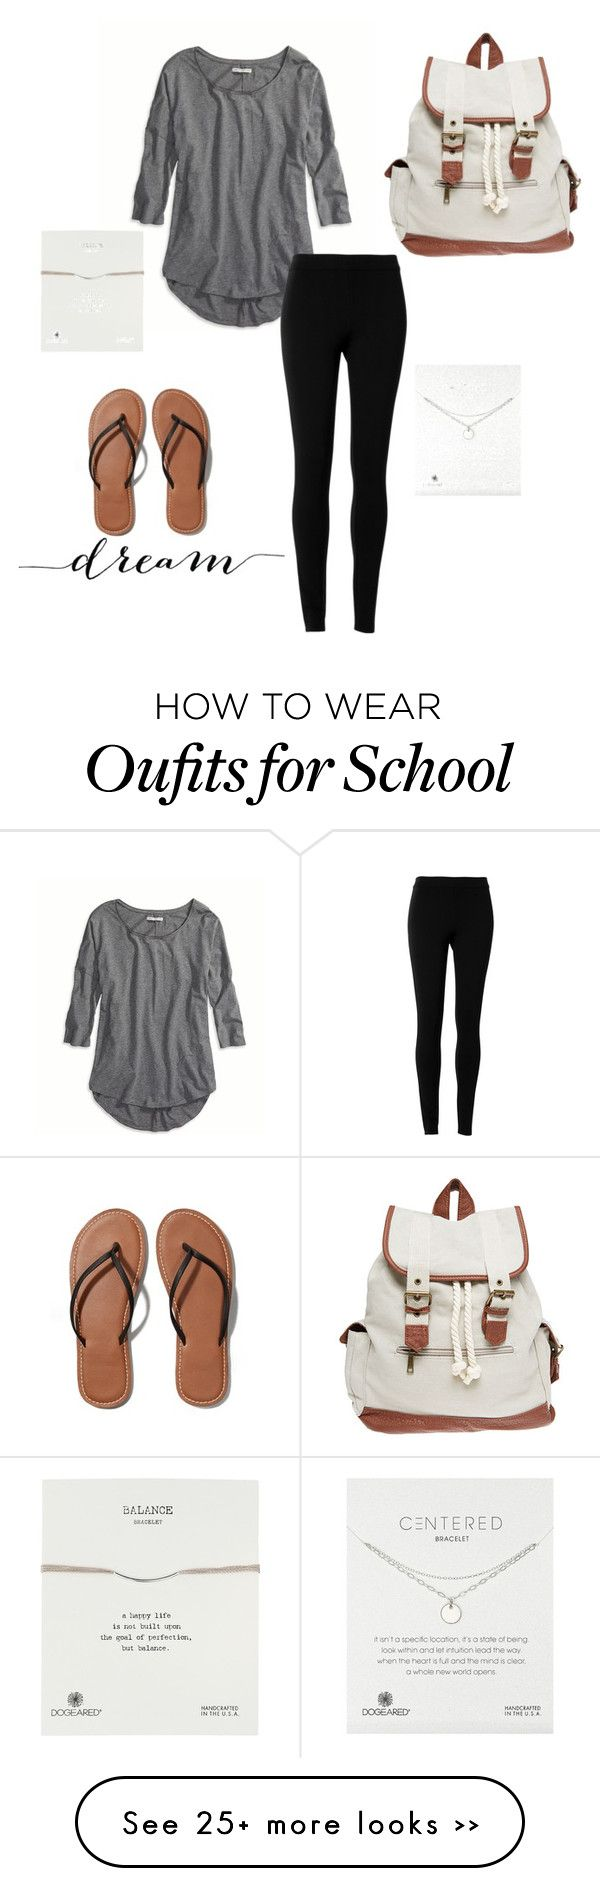 """Casual Back To School"" by matilda131 on Polyvore featuring American Eagle Outfitters, Max Studio, Abercrombie & Fitch, Wet Seal and Dogeared"